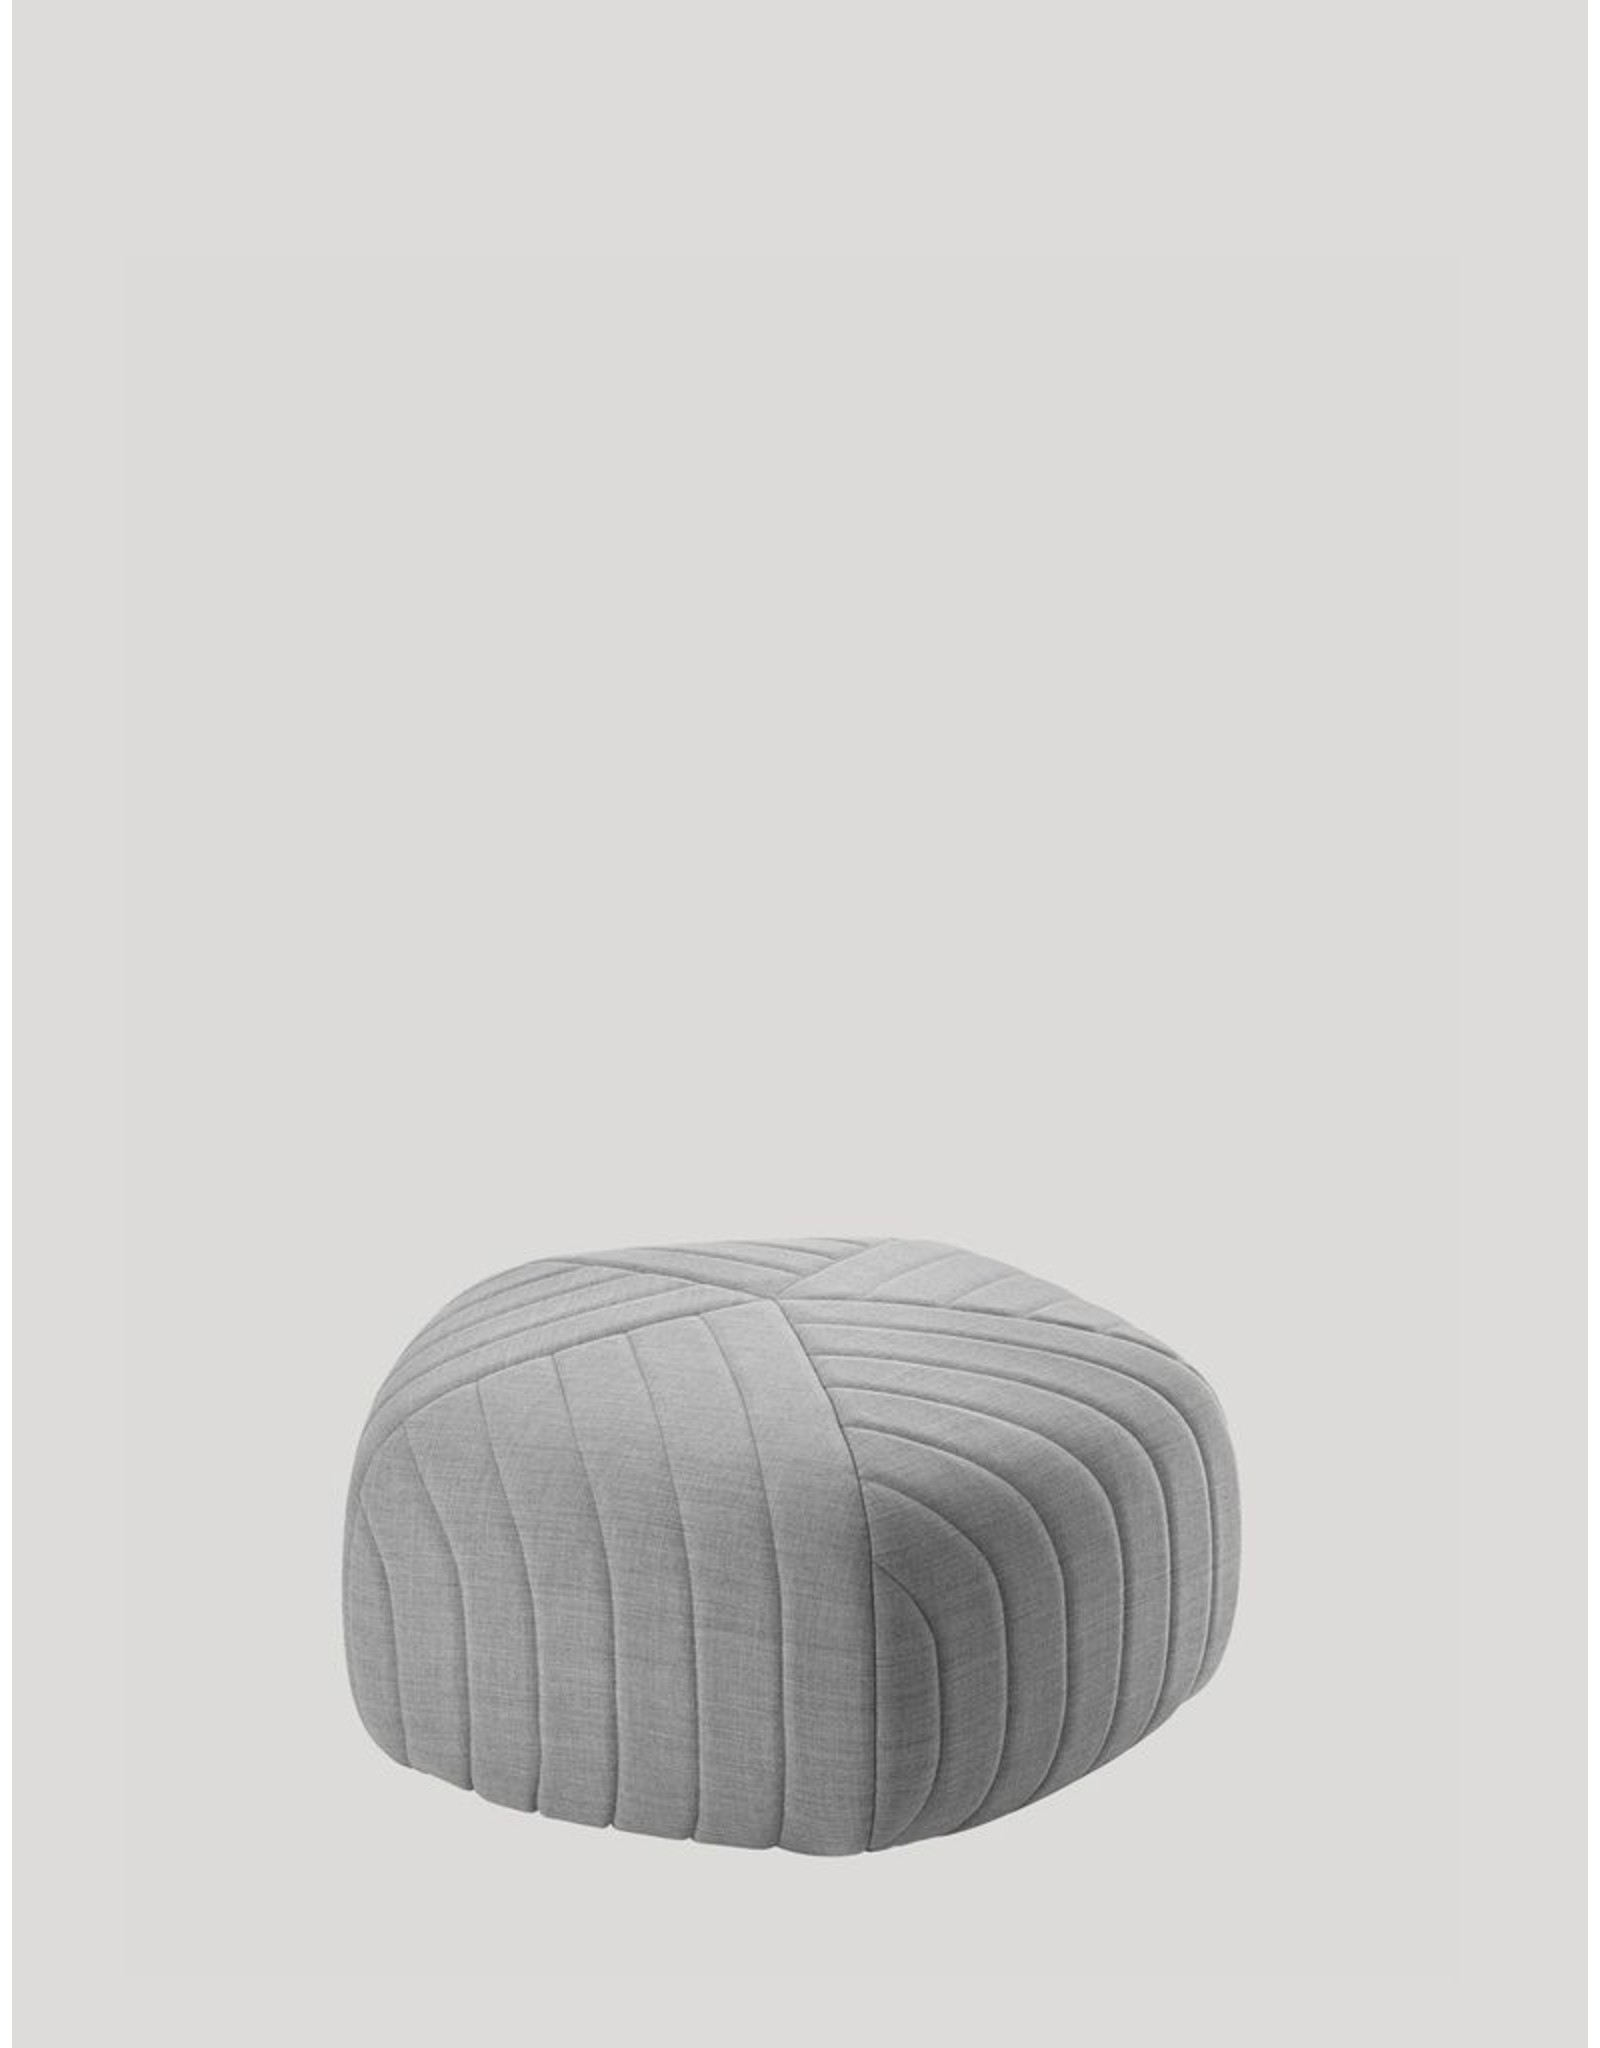 Muuto MUUTO FIVE POUF LIGHT GREY